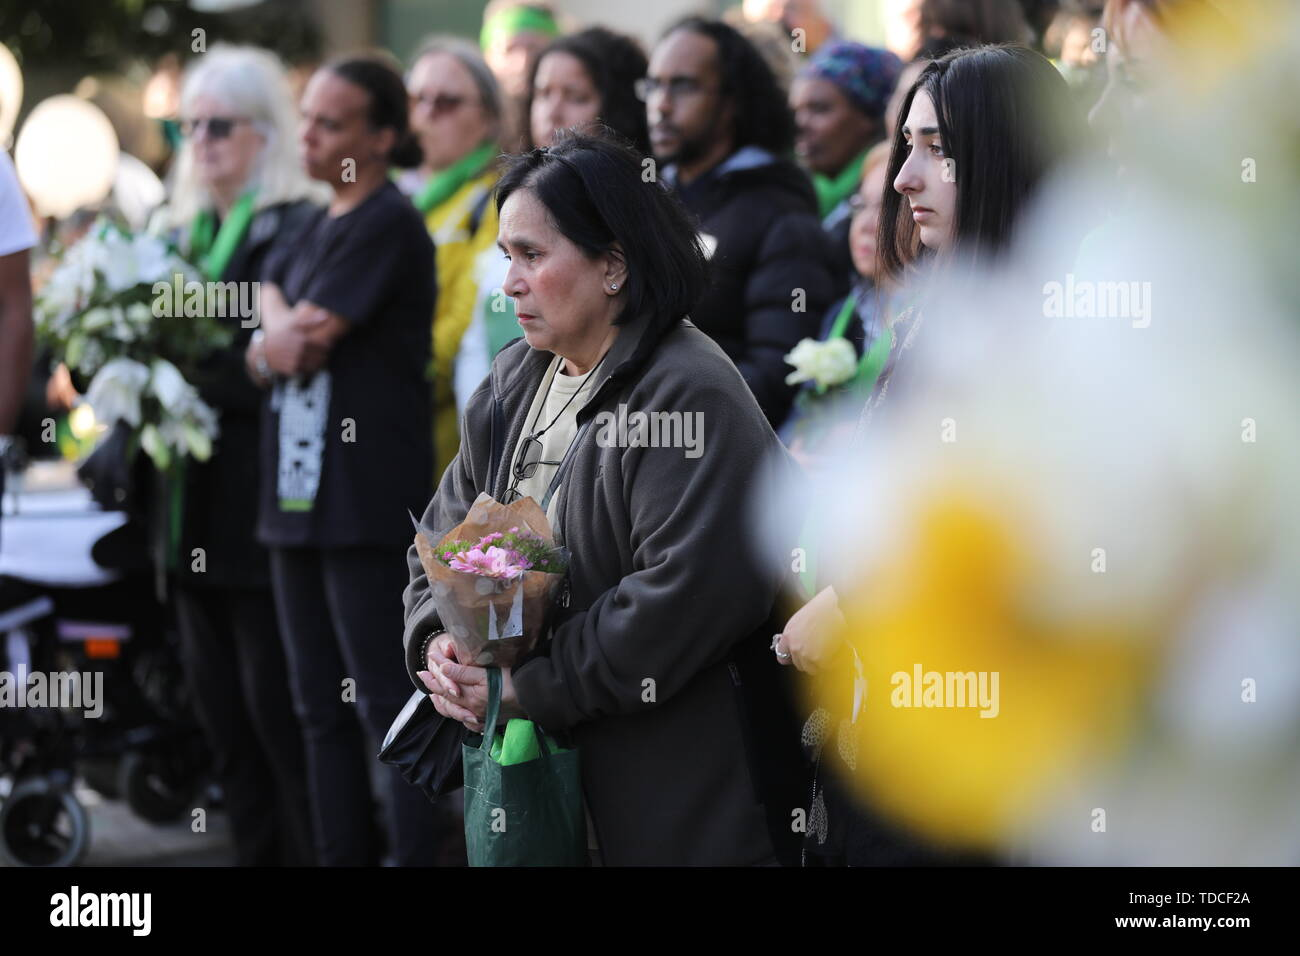 Family and friends of the 72 people who lost their lives in the Grenfell Tower block fire lay wreaths outside Grenfell Tower, London, to mark the two-year anniversary. - Stock Image